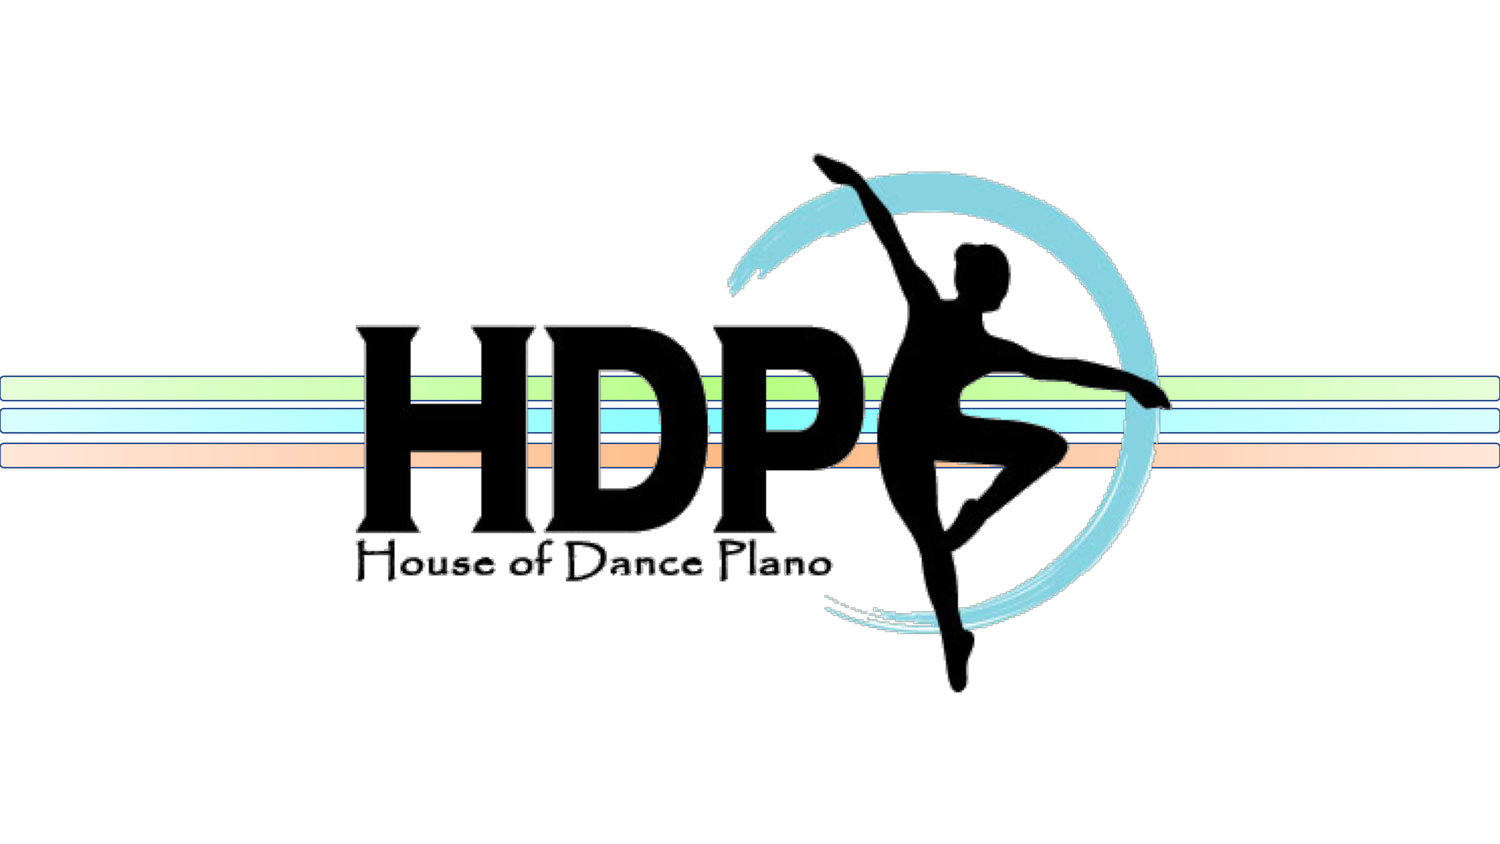 House of Dance Plano